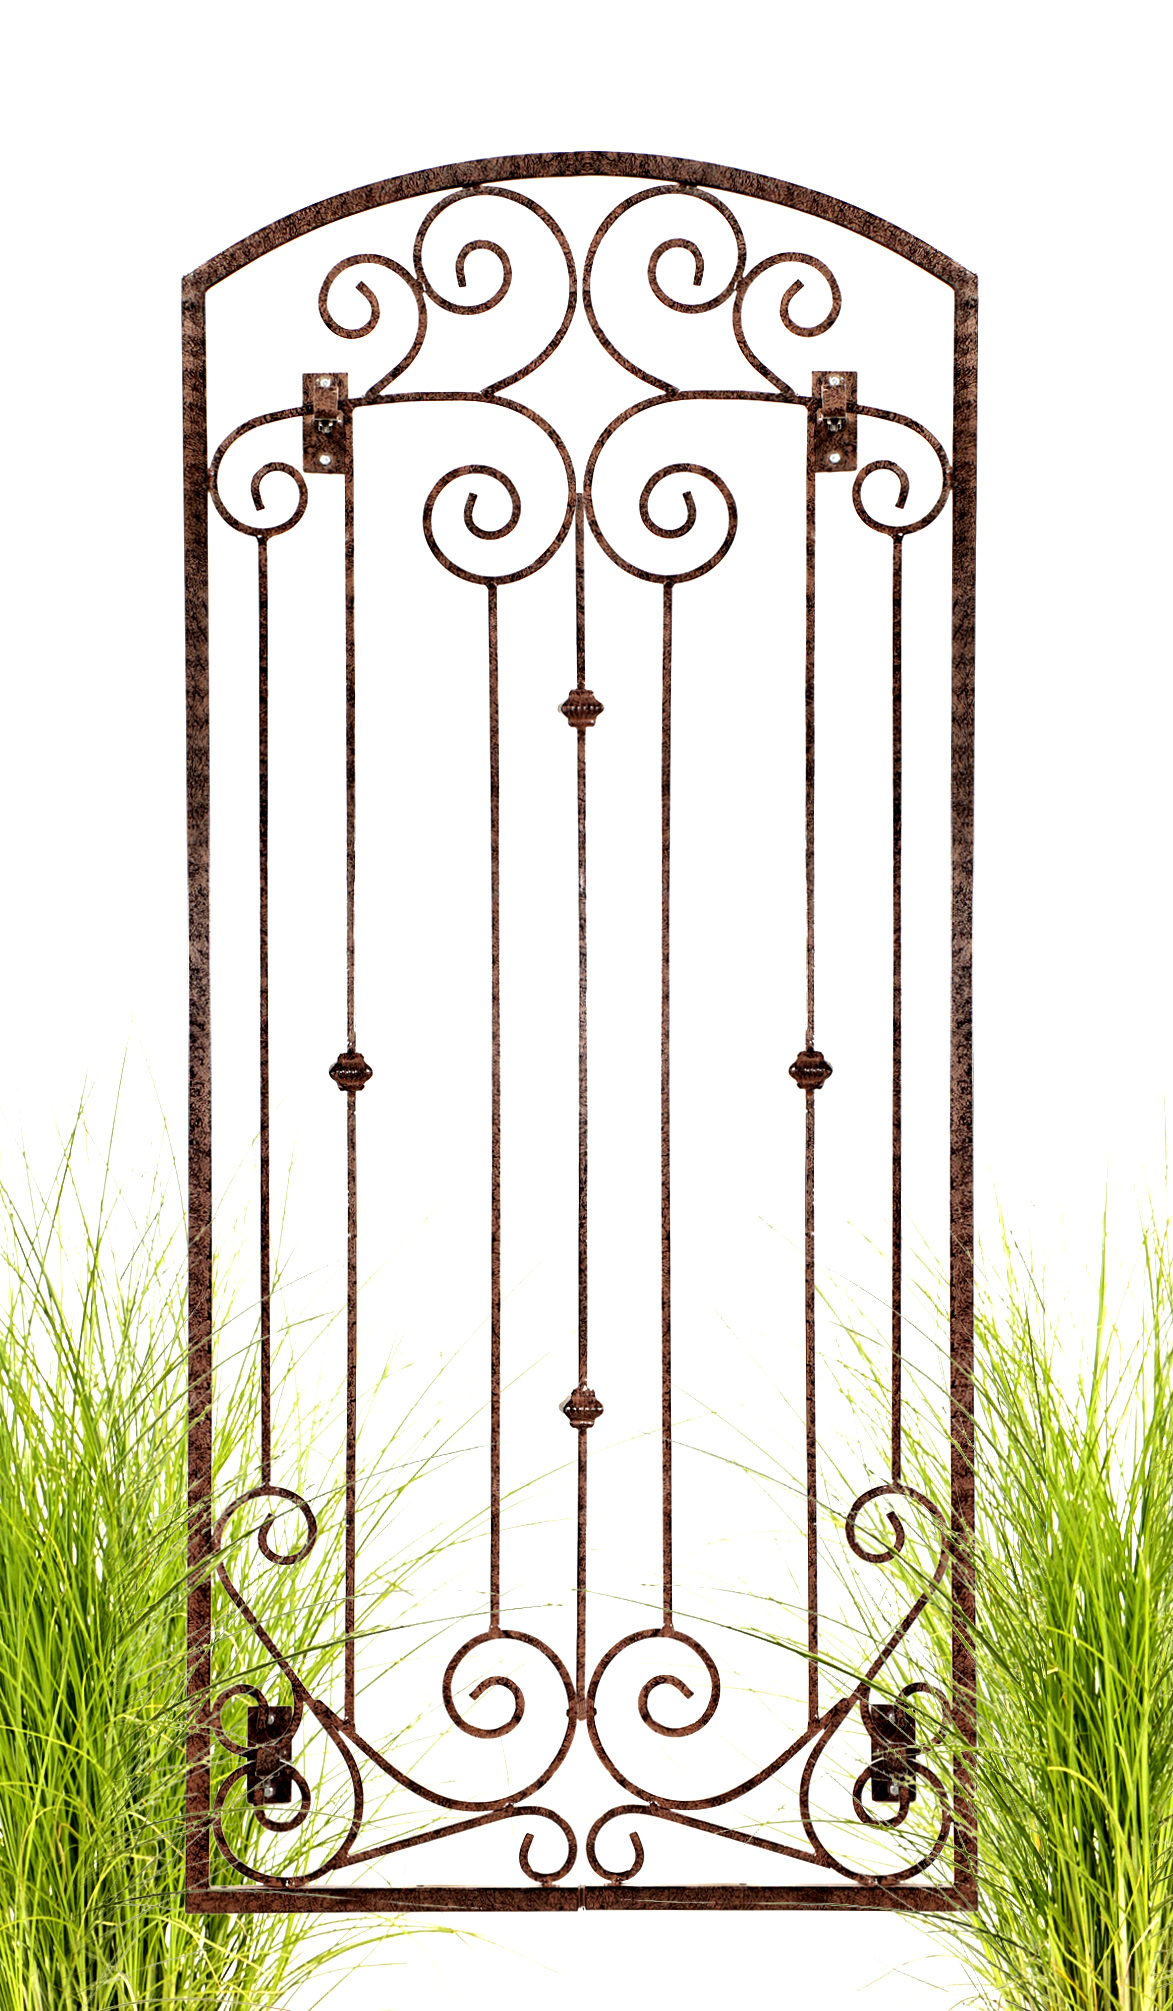 Heavy duty metal wall trellis